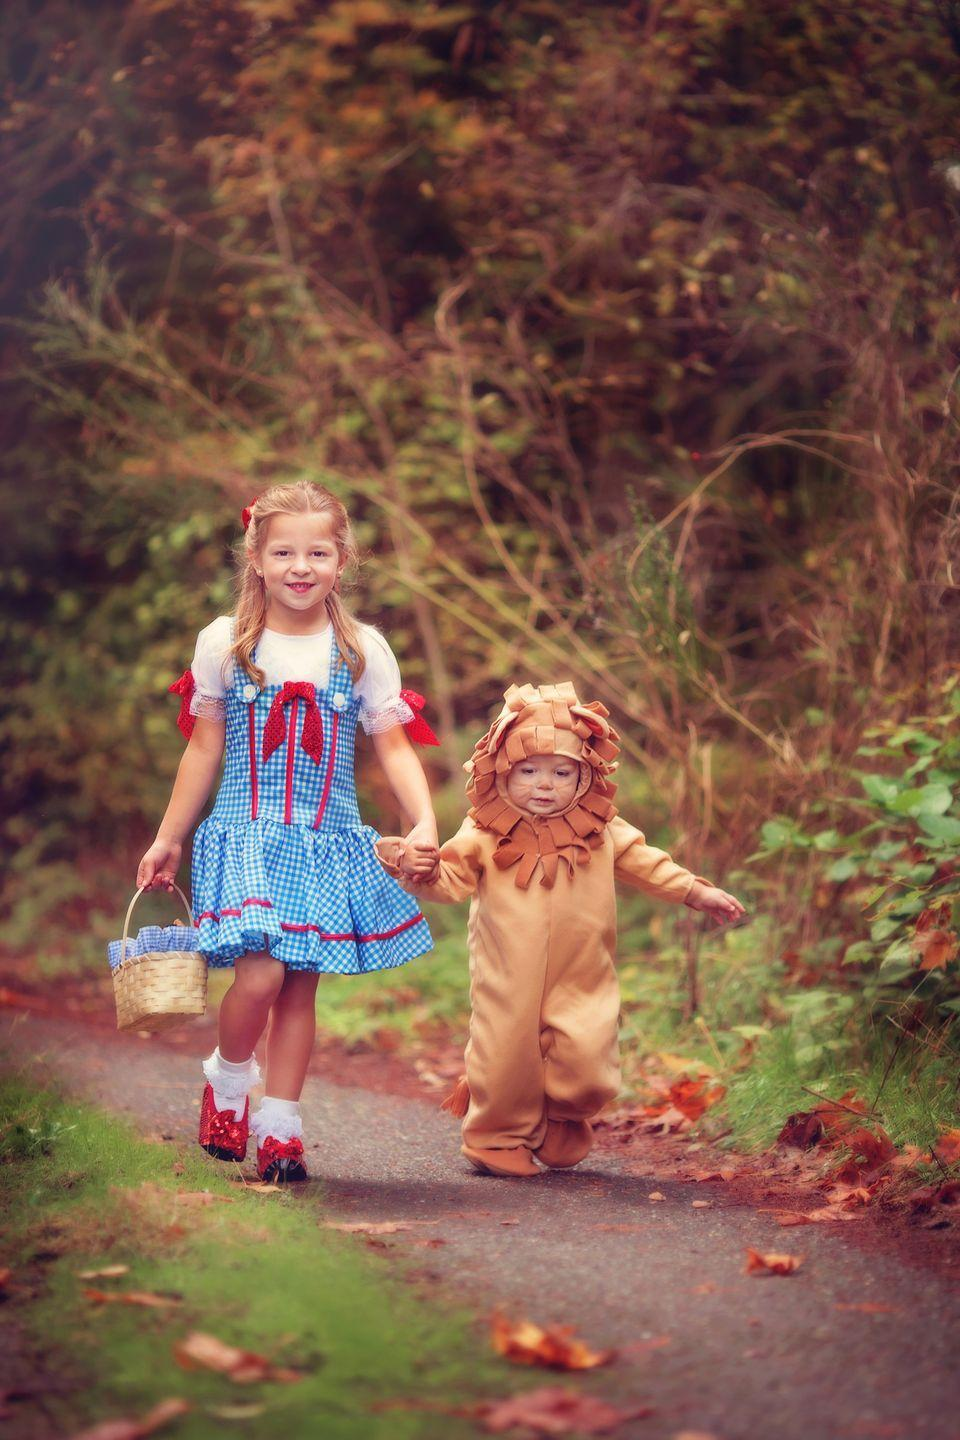 """<p>Every little girl loves donning pigtails and a checkered dress and going as Dorothy on Halloween. Dress the other members of your family as the cowardly lion, the tin man, or the scarecrow for a costume that's sure to be a hit. </p><p><a class=""""link rapid-noclick-resp"""" href=""""https://www.amazon.com/Wizard-Deluxe-Dorothy-Costume-Large/dp/B00BJH4M5C/?tag=syn-yahoo-20&ascsubtag=%5Bartid%7C10055.g.33300912%5Bsrc%7Cyahoo-us"""" rel=""""nofollow noopener"""" target=""""_blank"""" data-ylk=""""slk:SHOP DOROTHY COSTUMES"""">SHOP DOROTHY COSTUMES</a></p><p><a class=""""link rapid-noclick-resp"""" href=""""https://www.amazon.com/Fun-World-Costumes-Toddler-Costume/dp/B002EDS1HA/?tag=syn-yahoo-20&ascsubtag=%5Bartid%7C10055.g.33300912%5Bsrc%7Cyahoo-us"""" rel=""""nofollow noopener"""" target=""""_blank"""" data-ylk=""""slk:SHOP LION COSTUMES"""">SHOP LION COSTUMES</a></p>"""